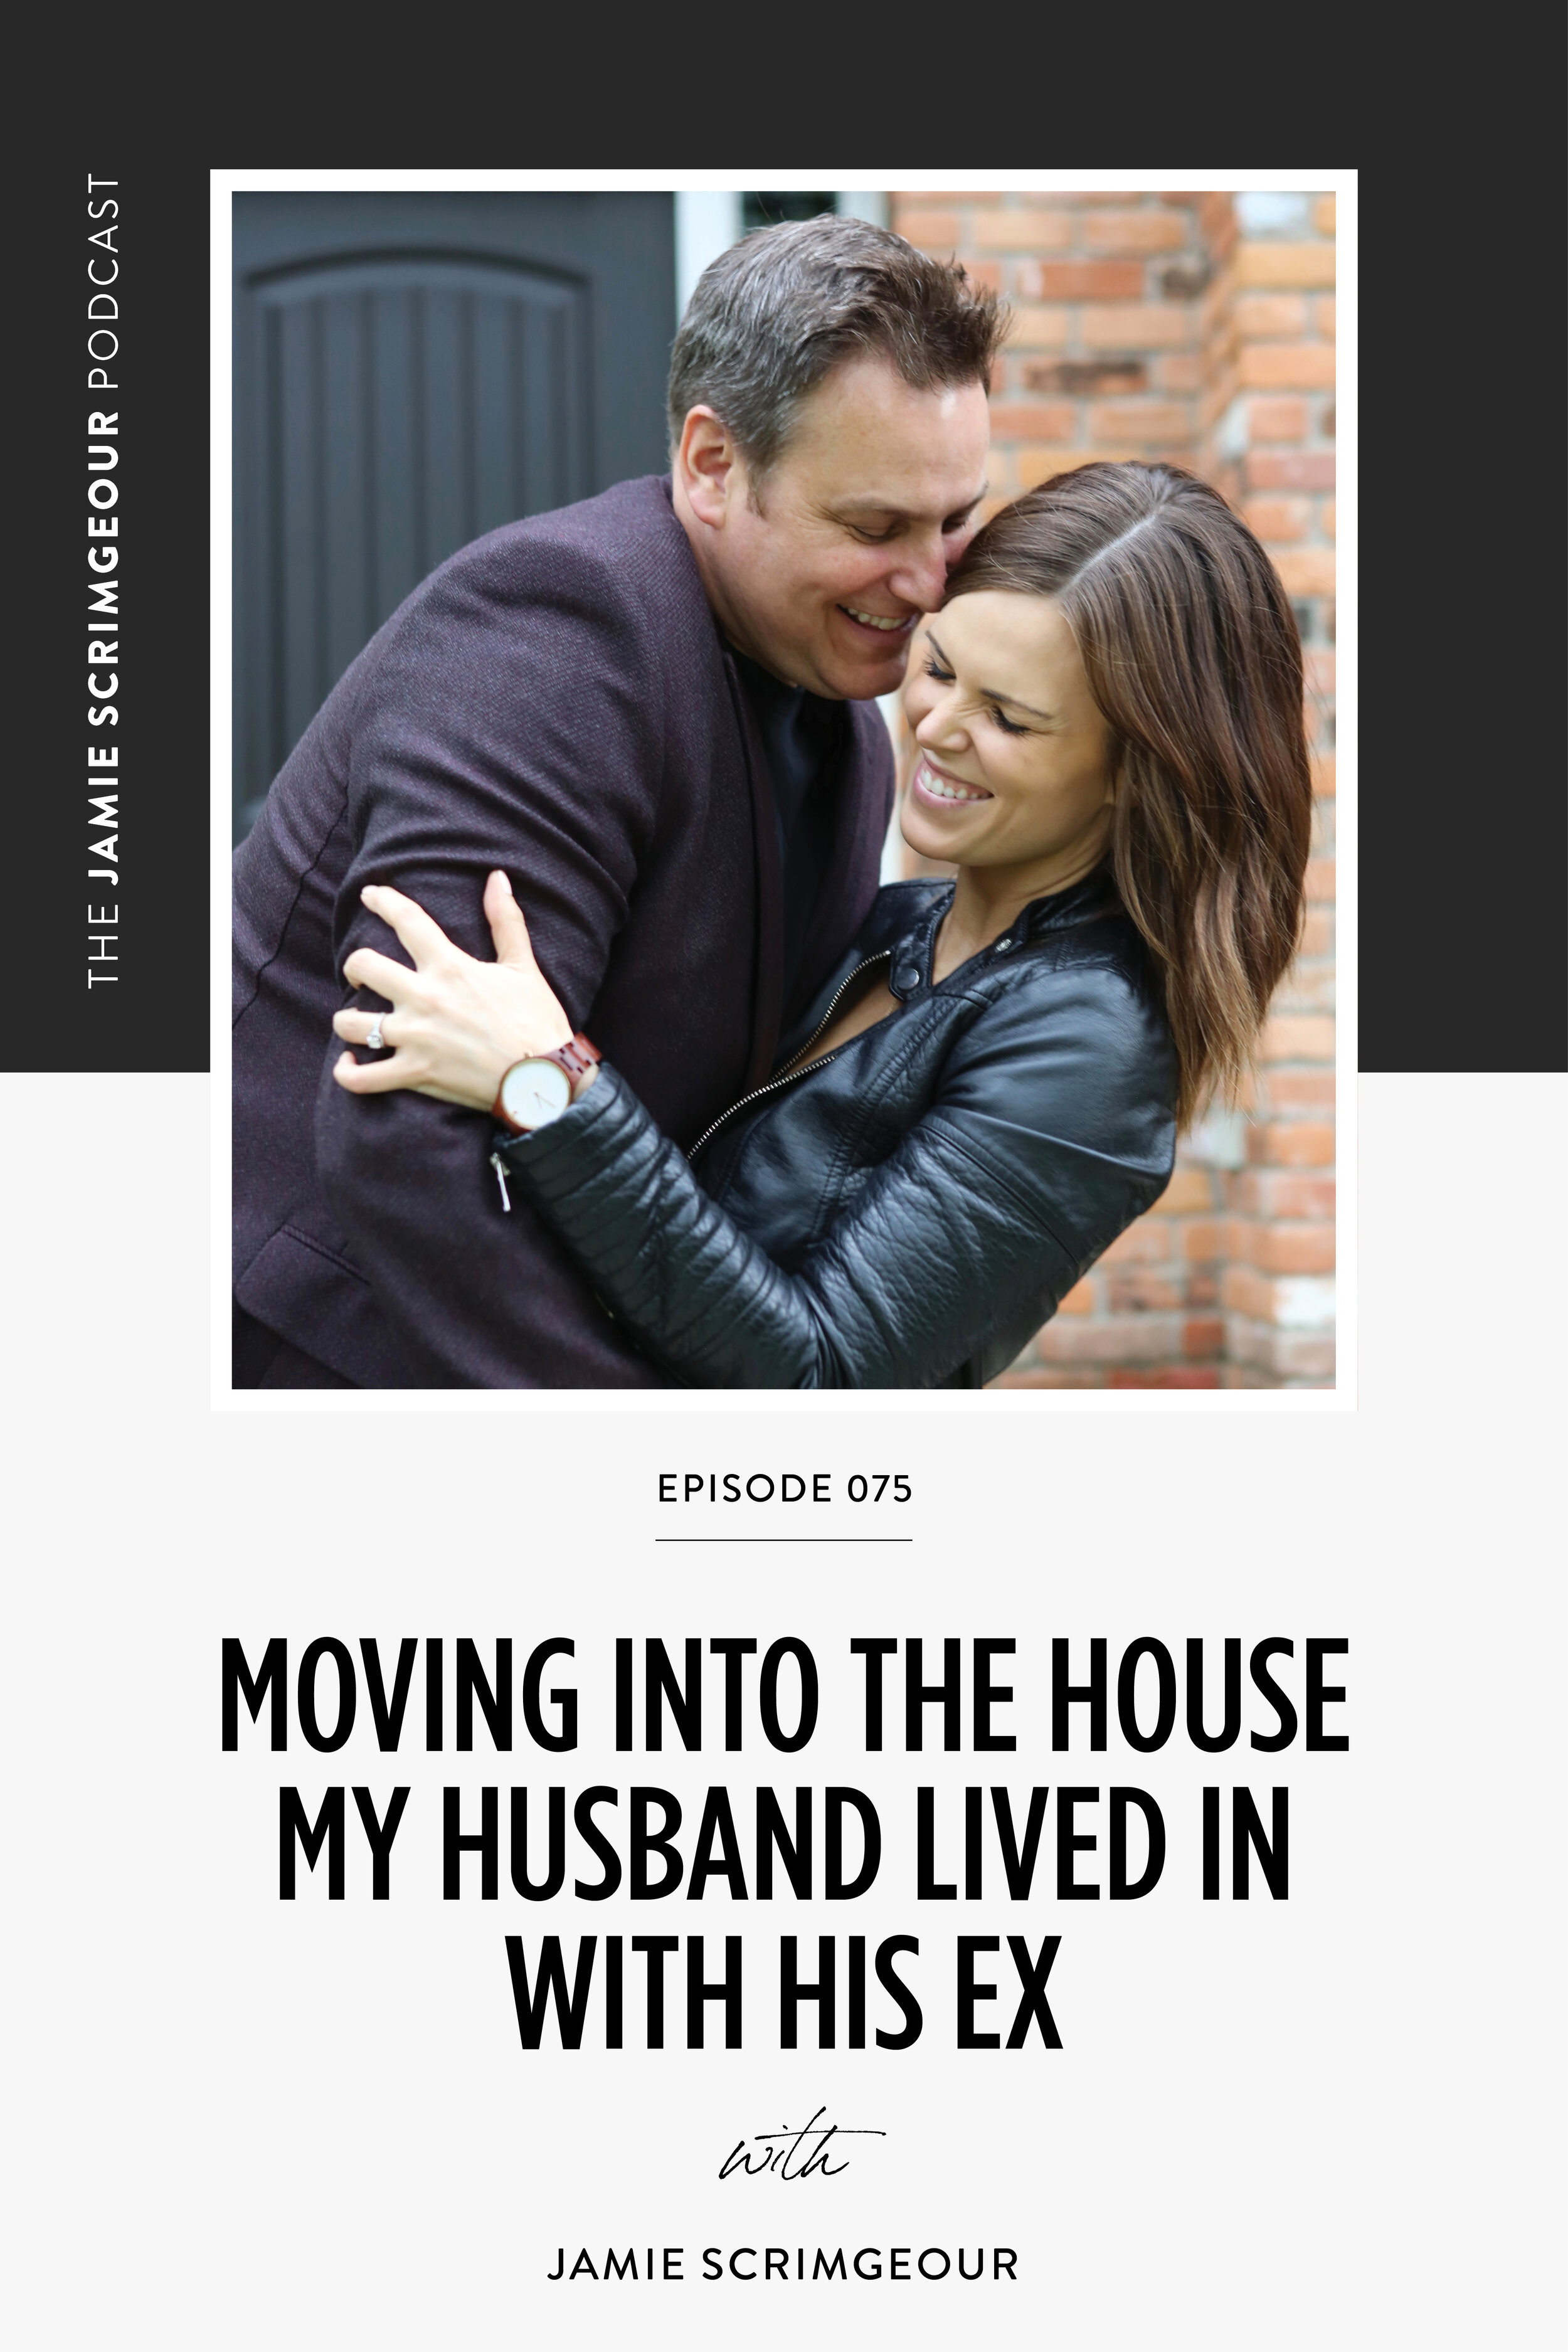 The Jamie Scrimgeour Podcast Episode 075 - Moving Into The House My Husband Lived In With His Ex